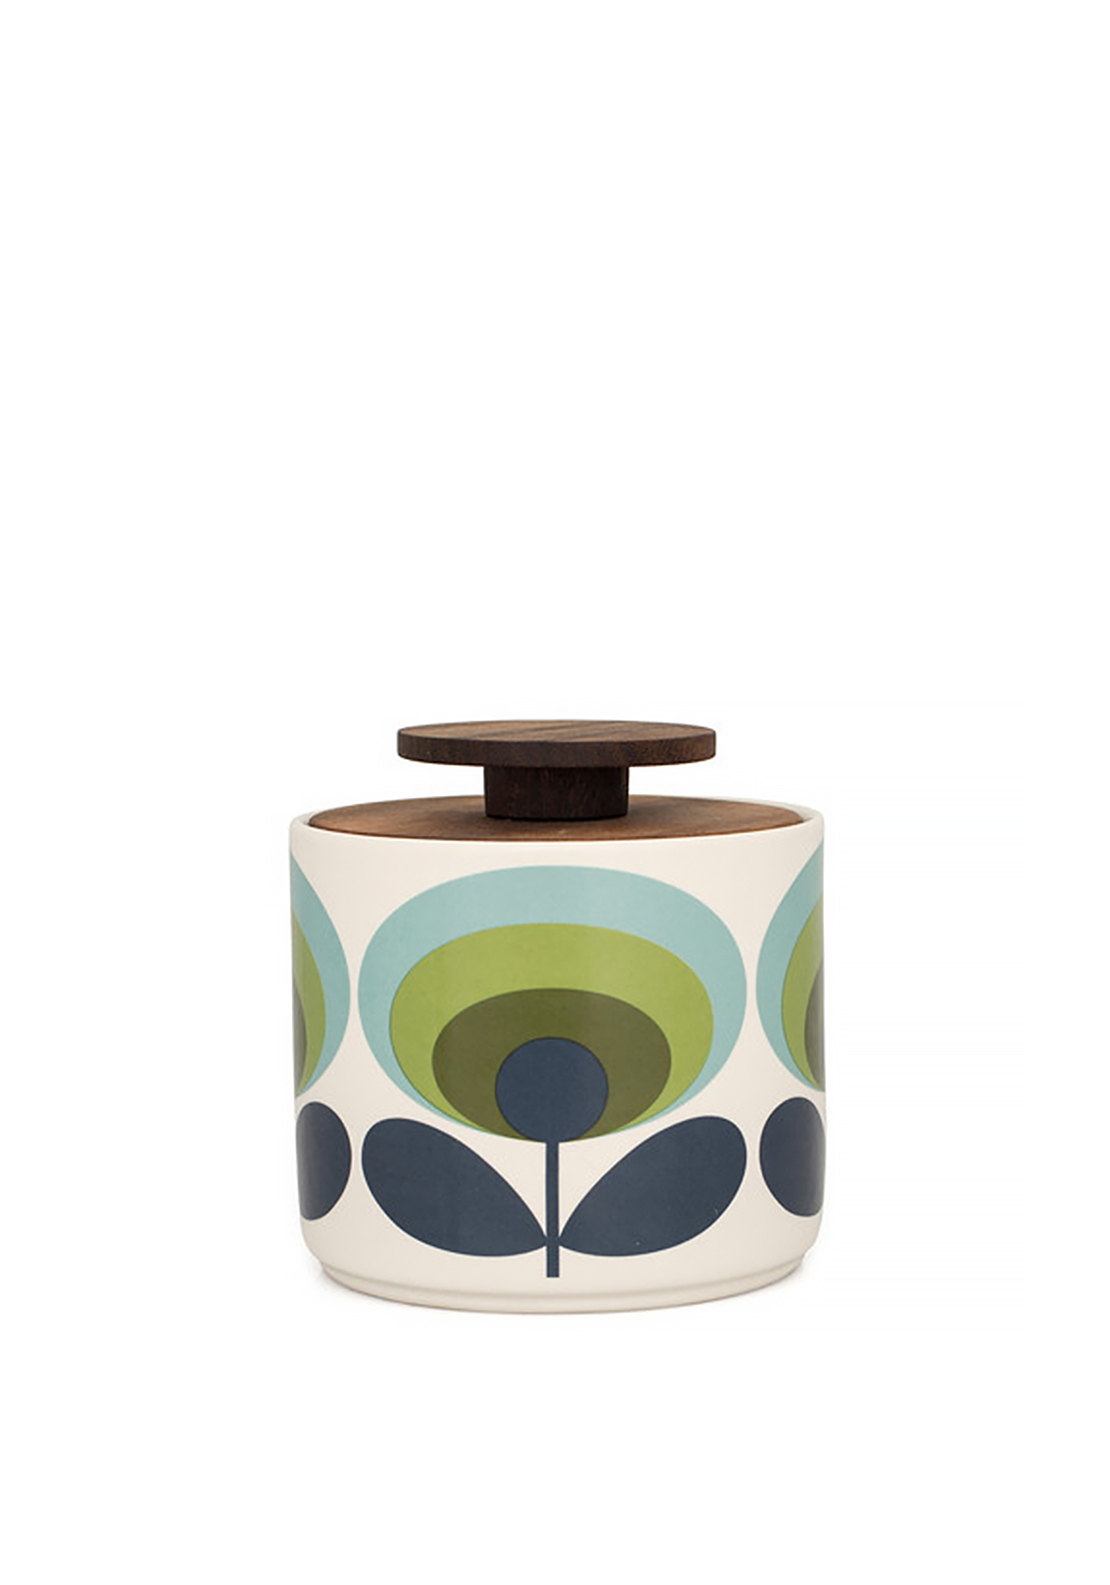 Orla Kiely House Storage Jar Small 1 Lt, Green Floral Print